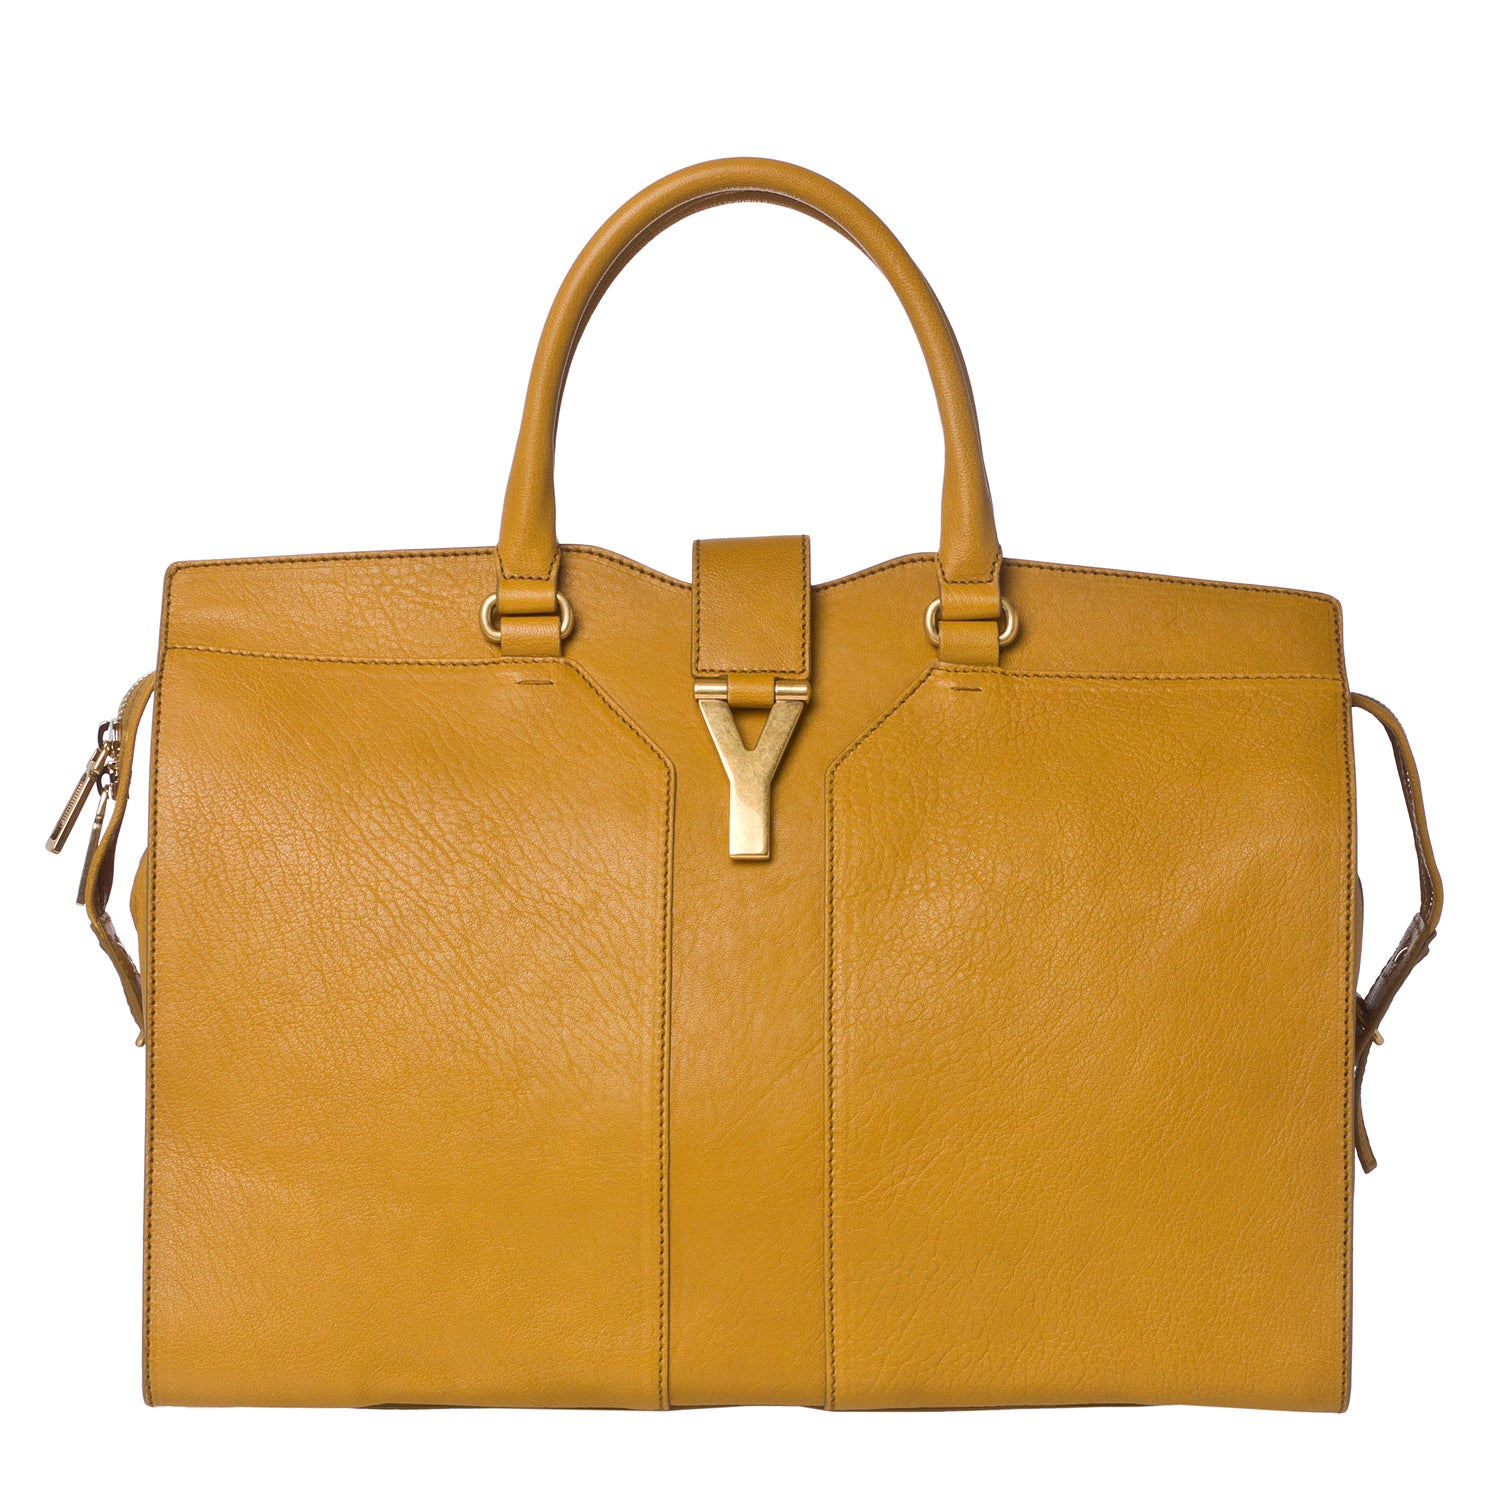 Yves Saint Lau X27 Cabas Chyc Large Mustard Leather Tote